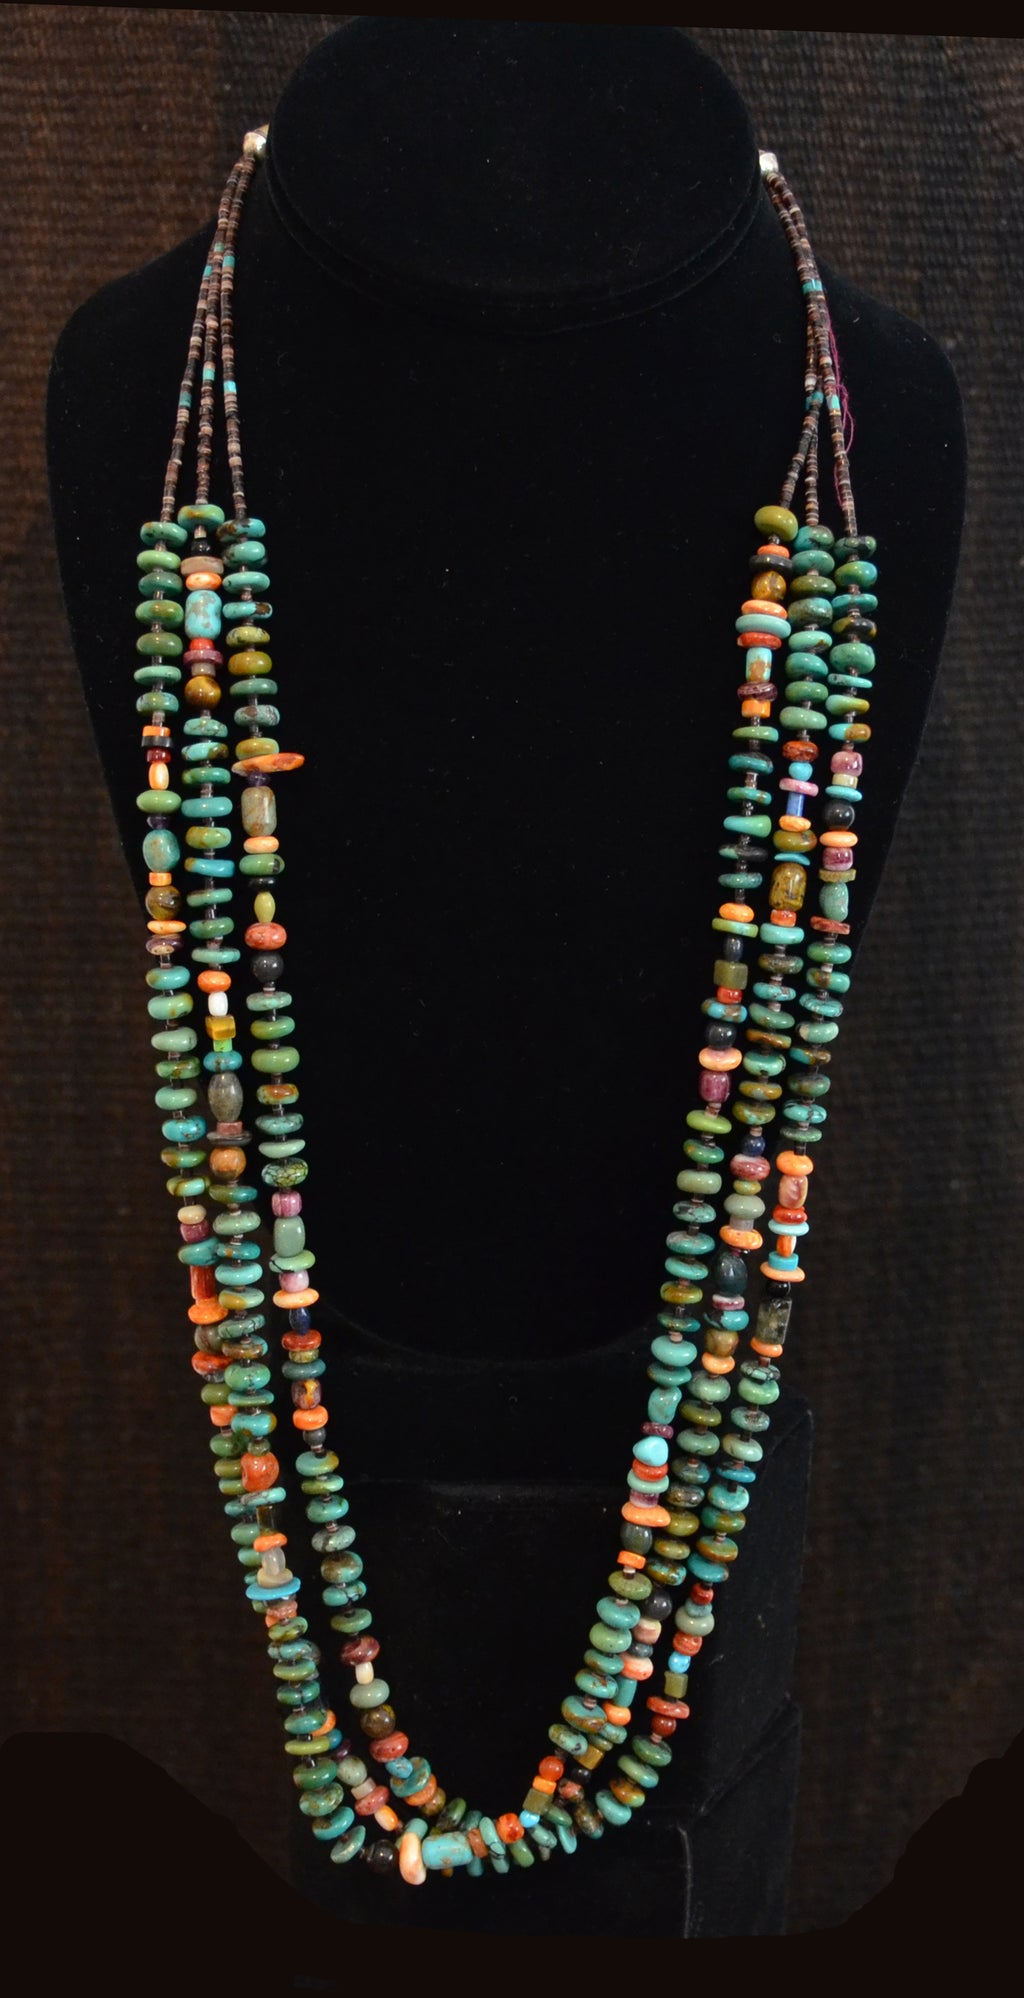 Native American Jewelry : Multi : Stone : Heishi Shell Necklace : NAJ-N27 - Getzwiller's Nizhoni Ranch Gallery